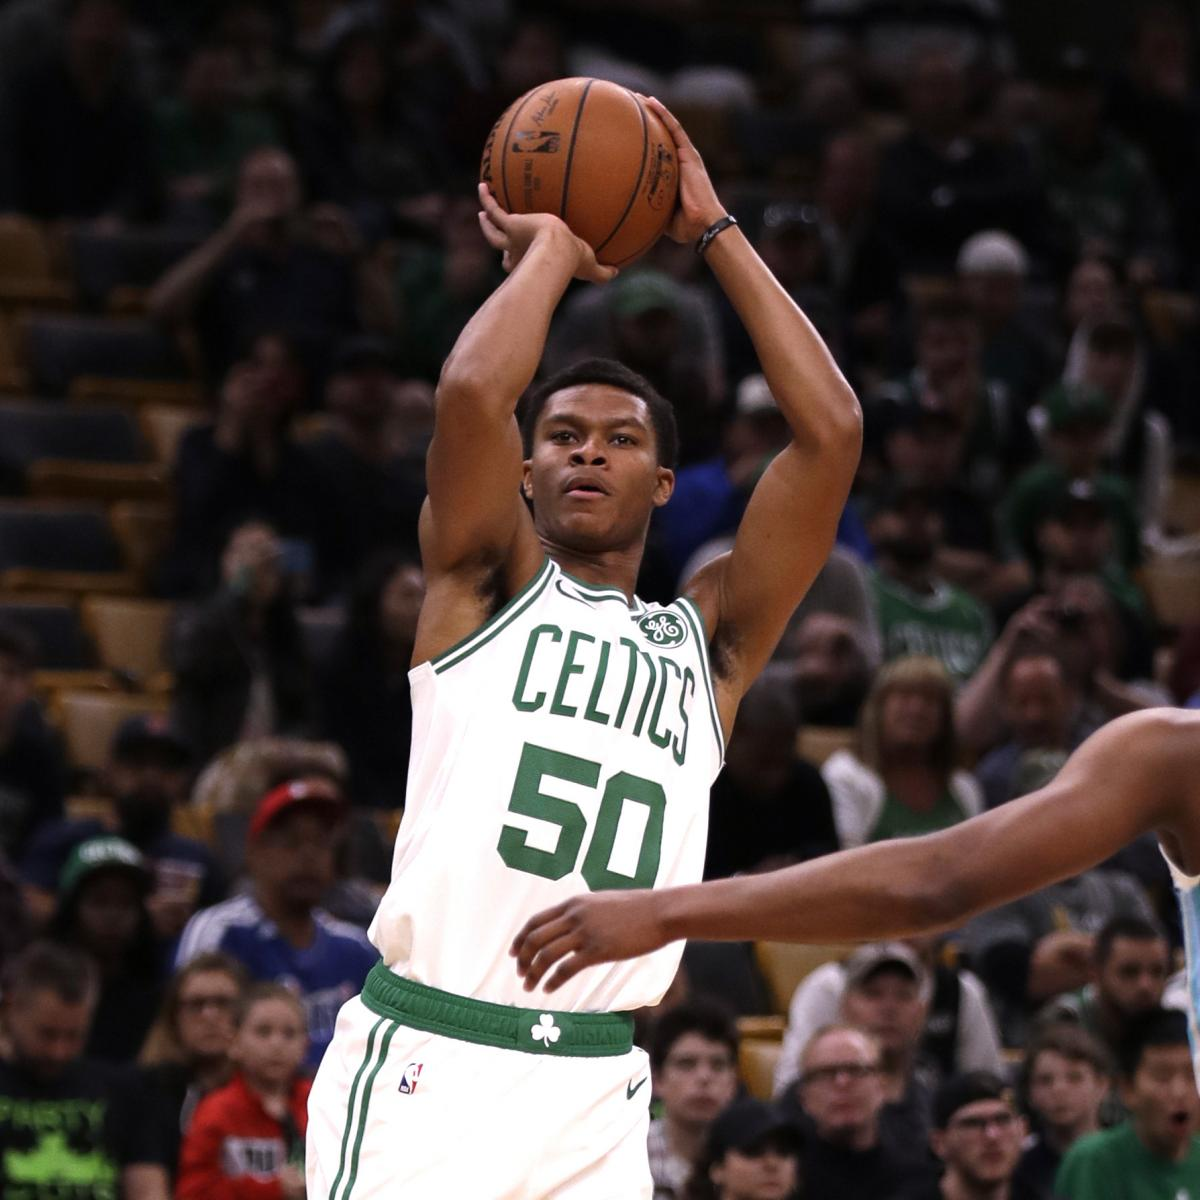 Ex-Celtics G League All-Star PJ Dozier Agrees To 1-Year